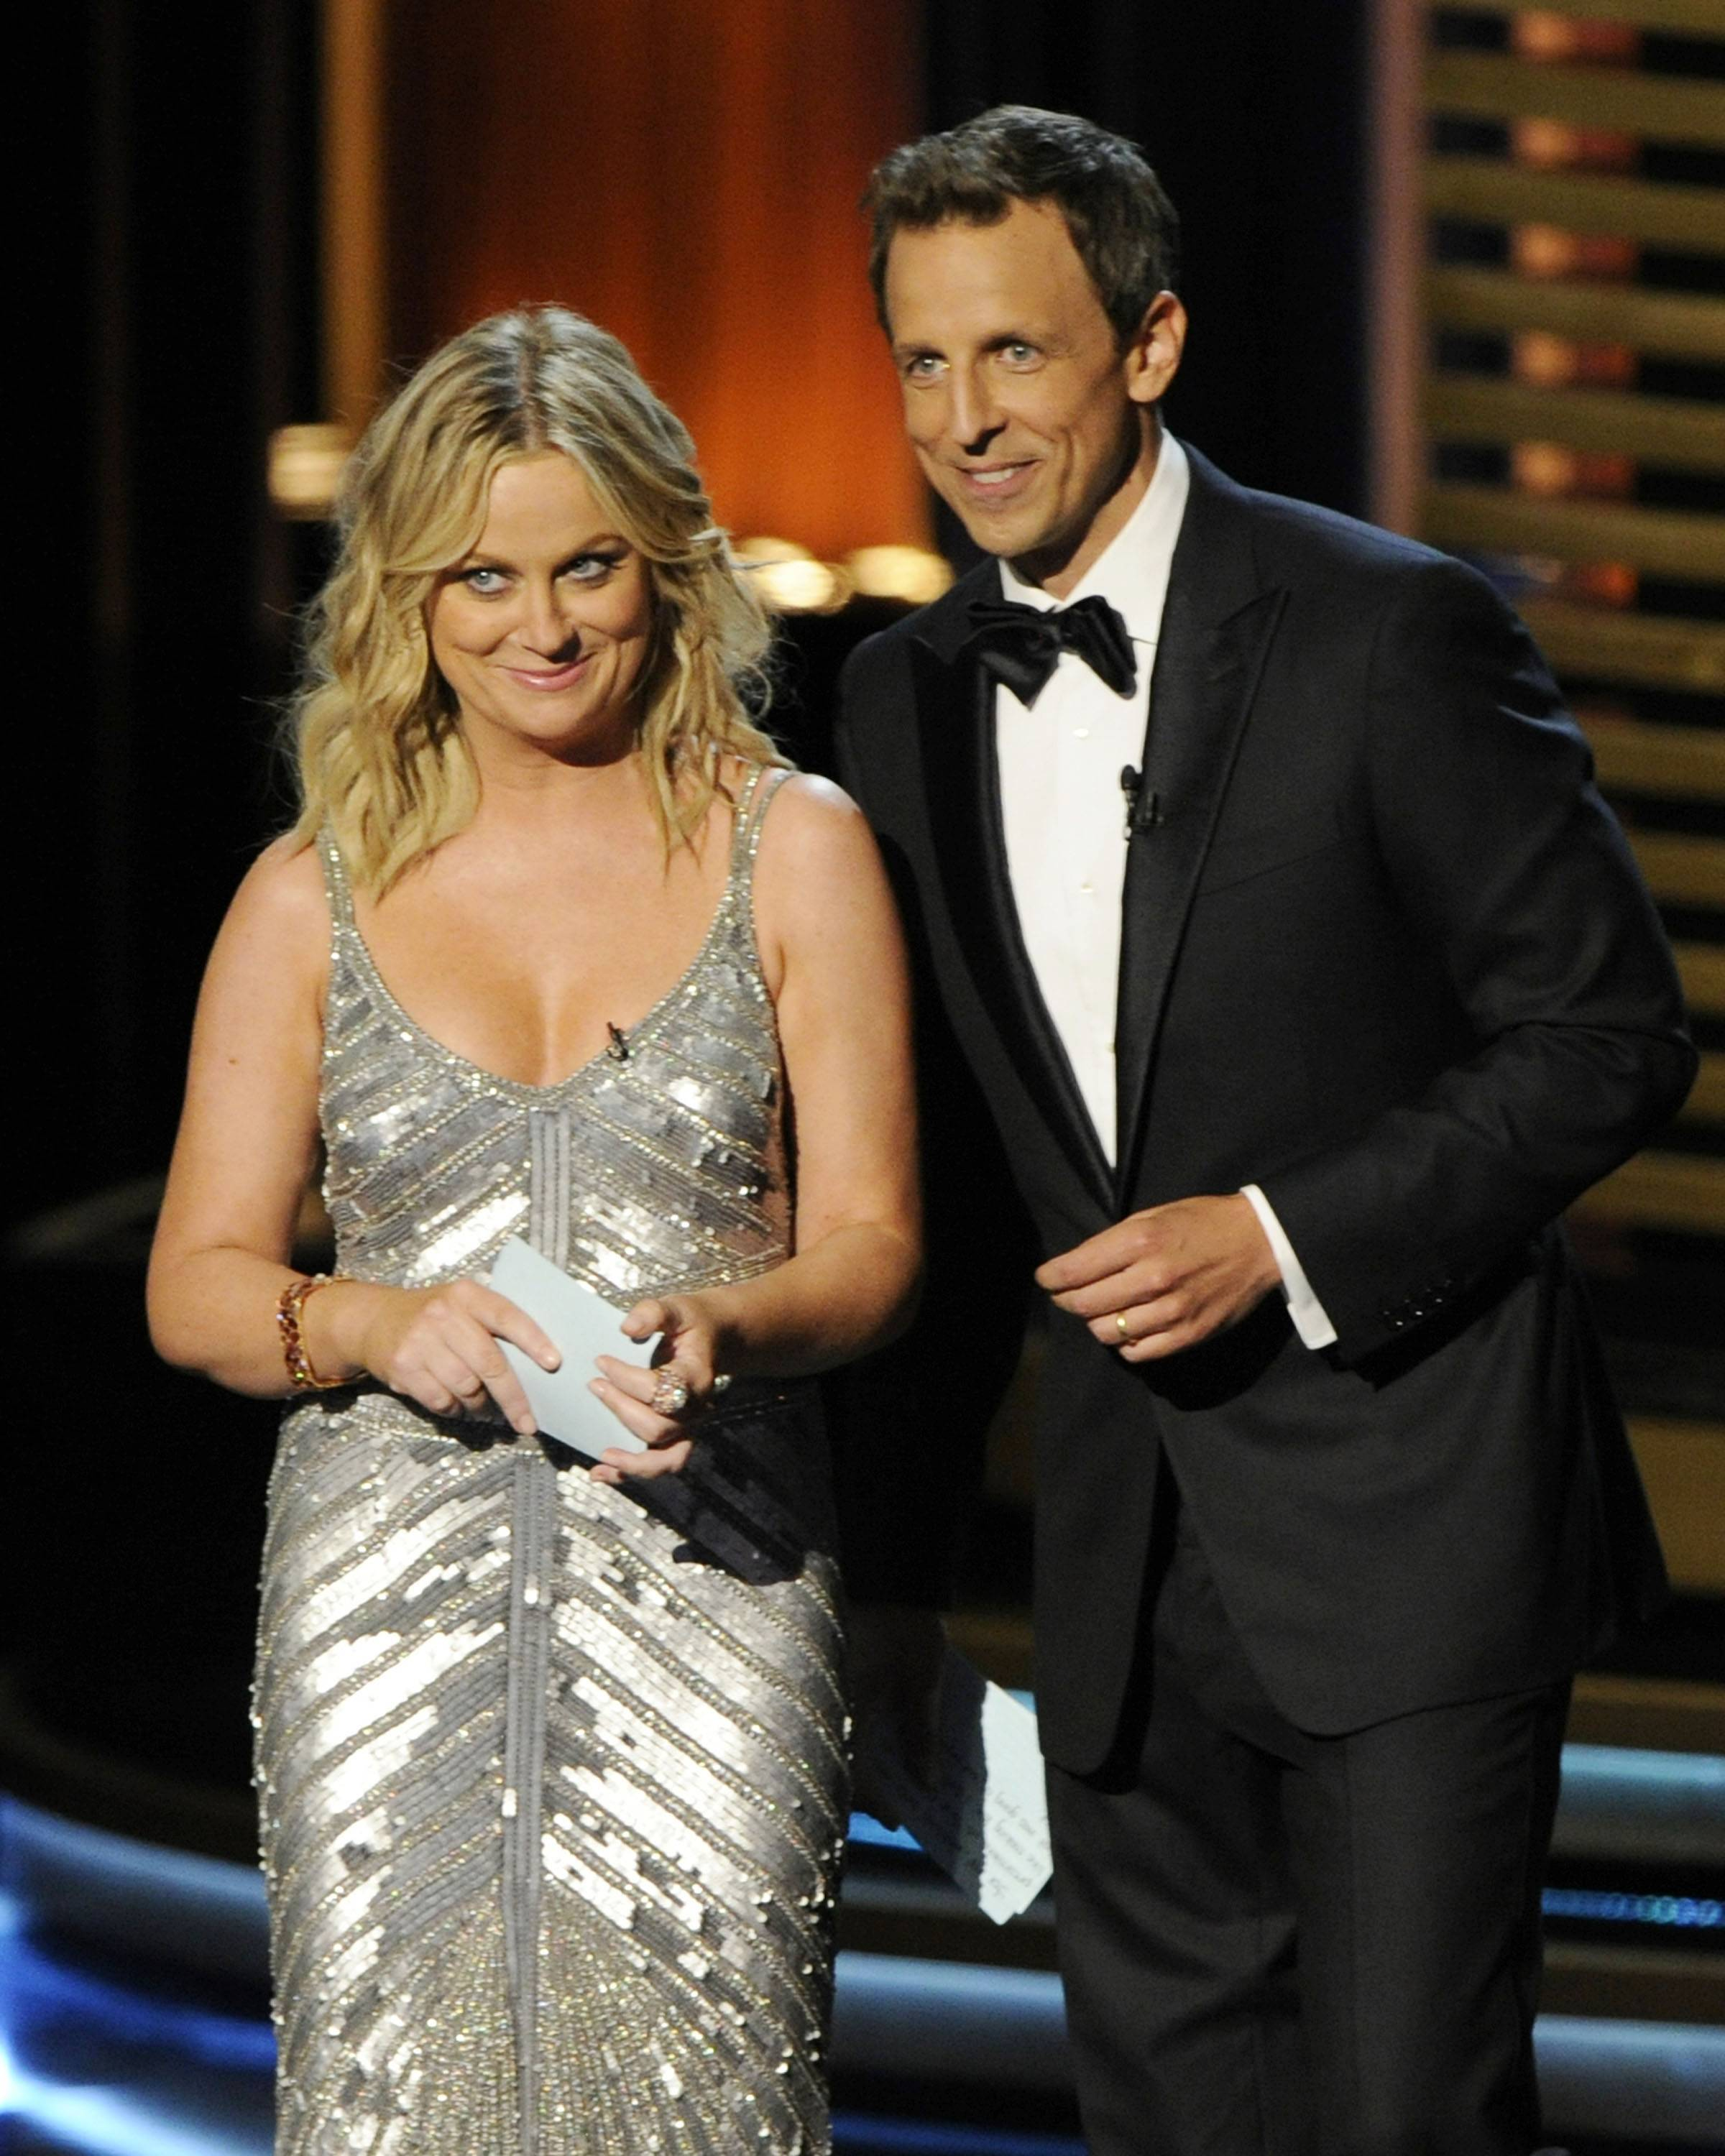 Amy Poehler, left, and host Seth Meyers speak onstage.